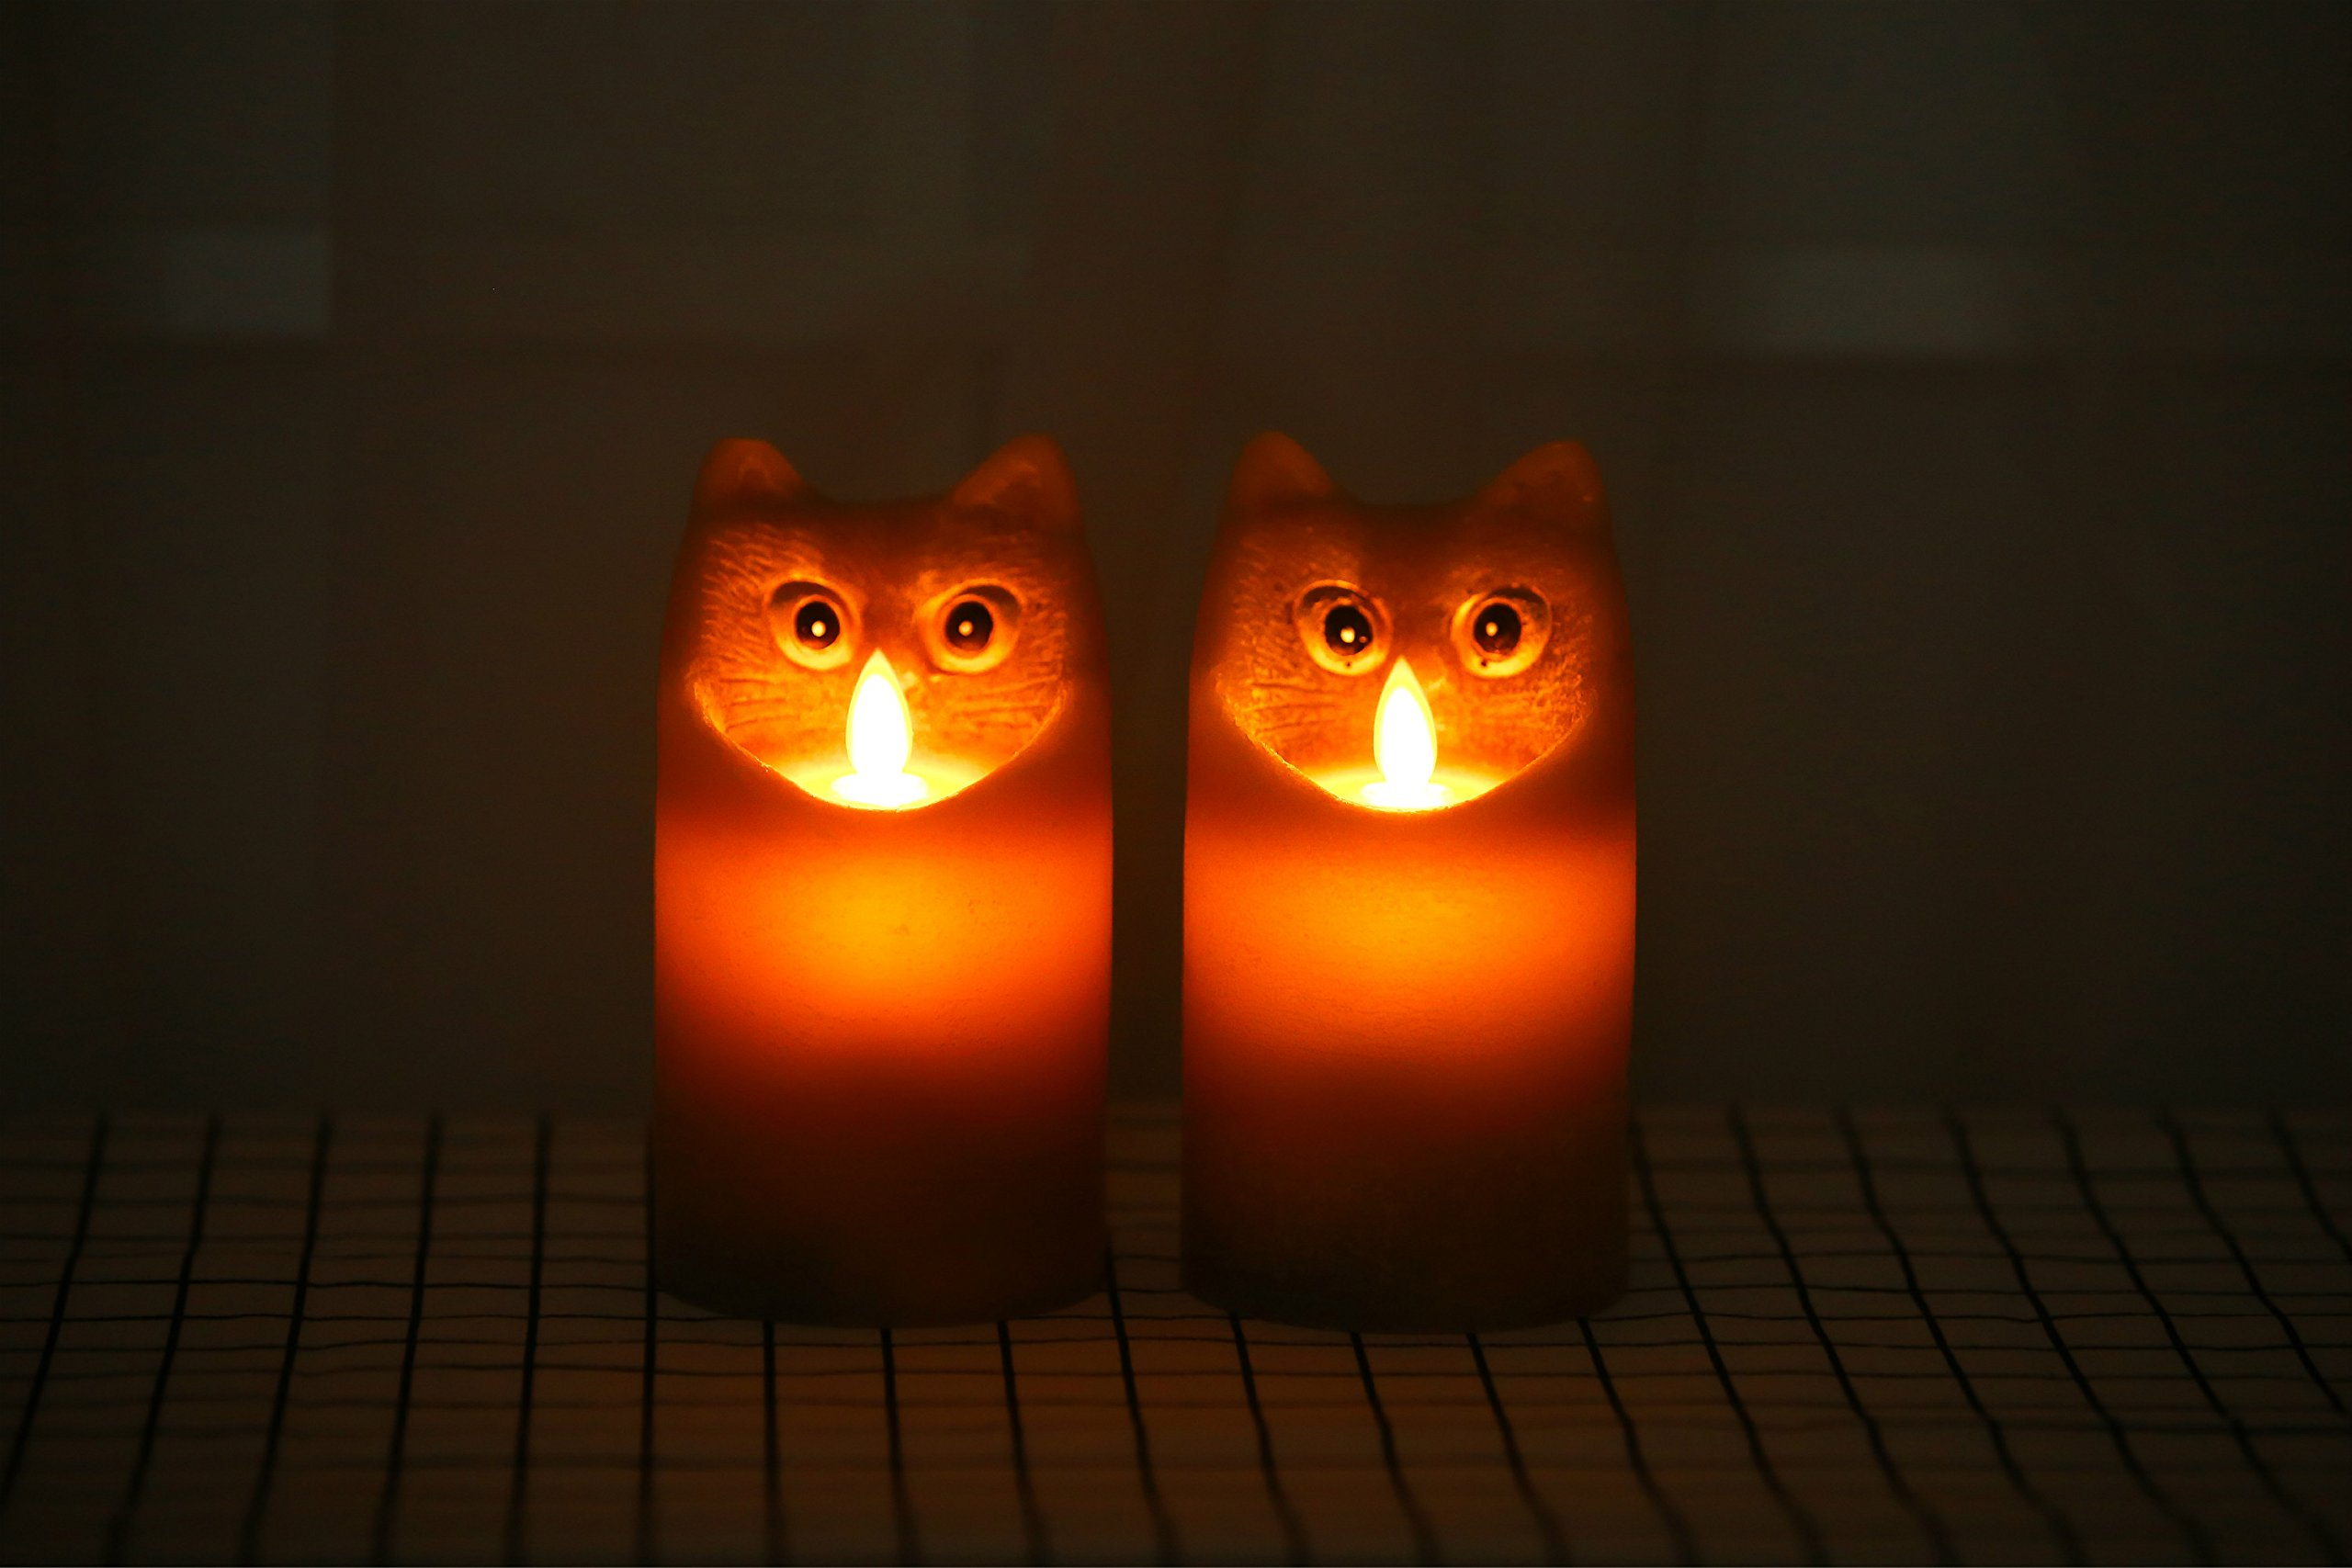 Kitch Aroma Marble Grey Color Cartoon Cat Flameless Candle with Timer For Birthday Gifts,Dia 3'' x H6'',Pack of 2 by Kitch Aroma (Image #9)